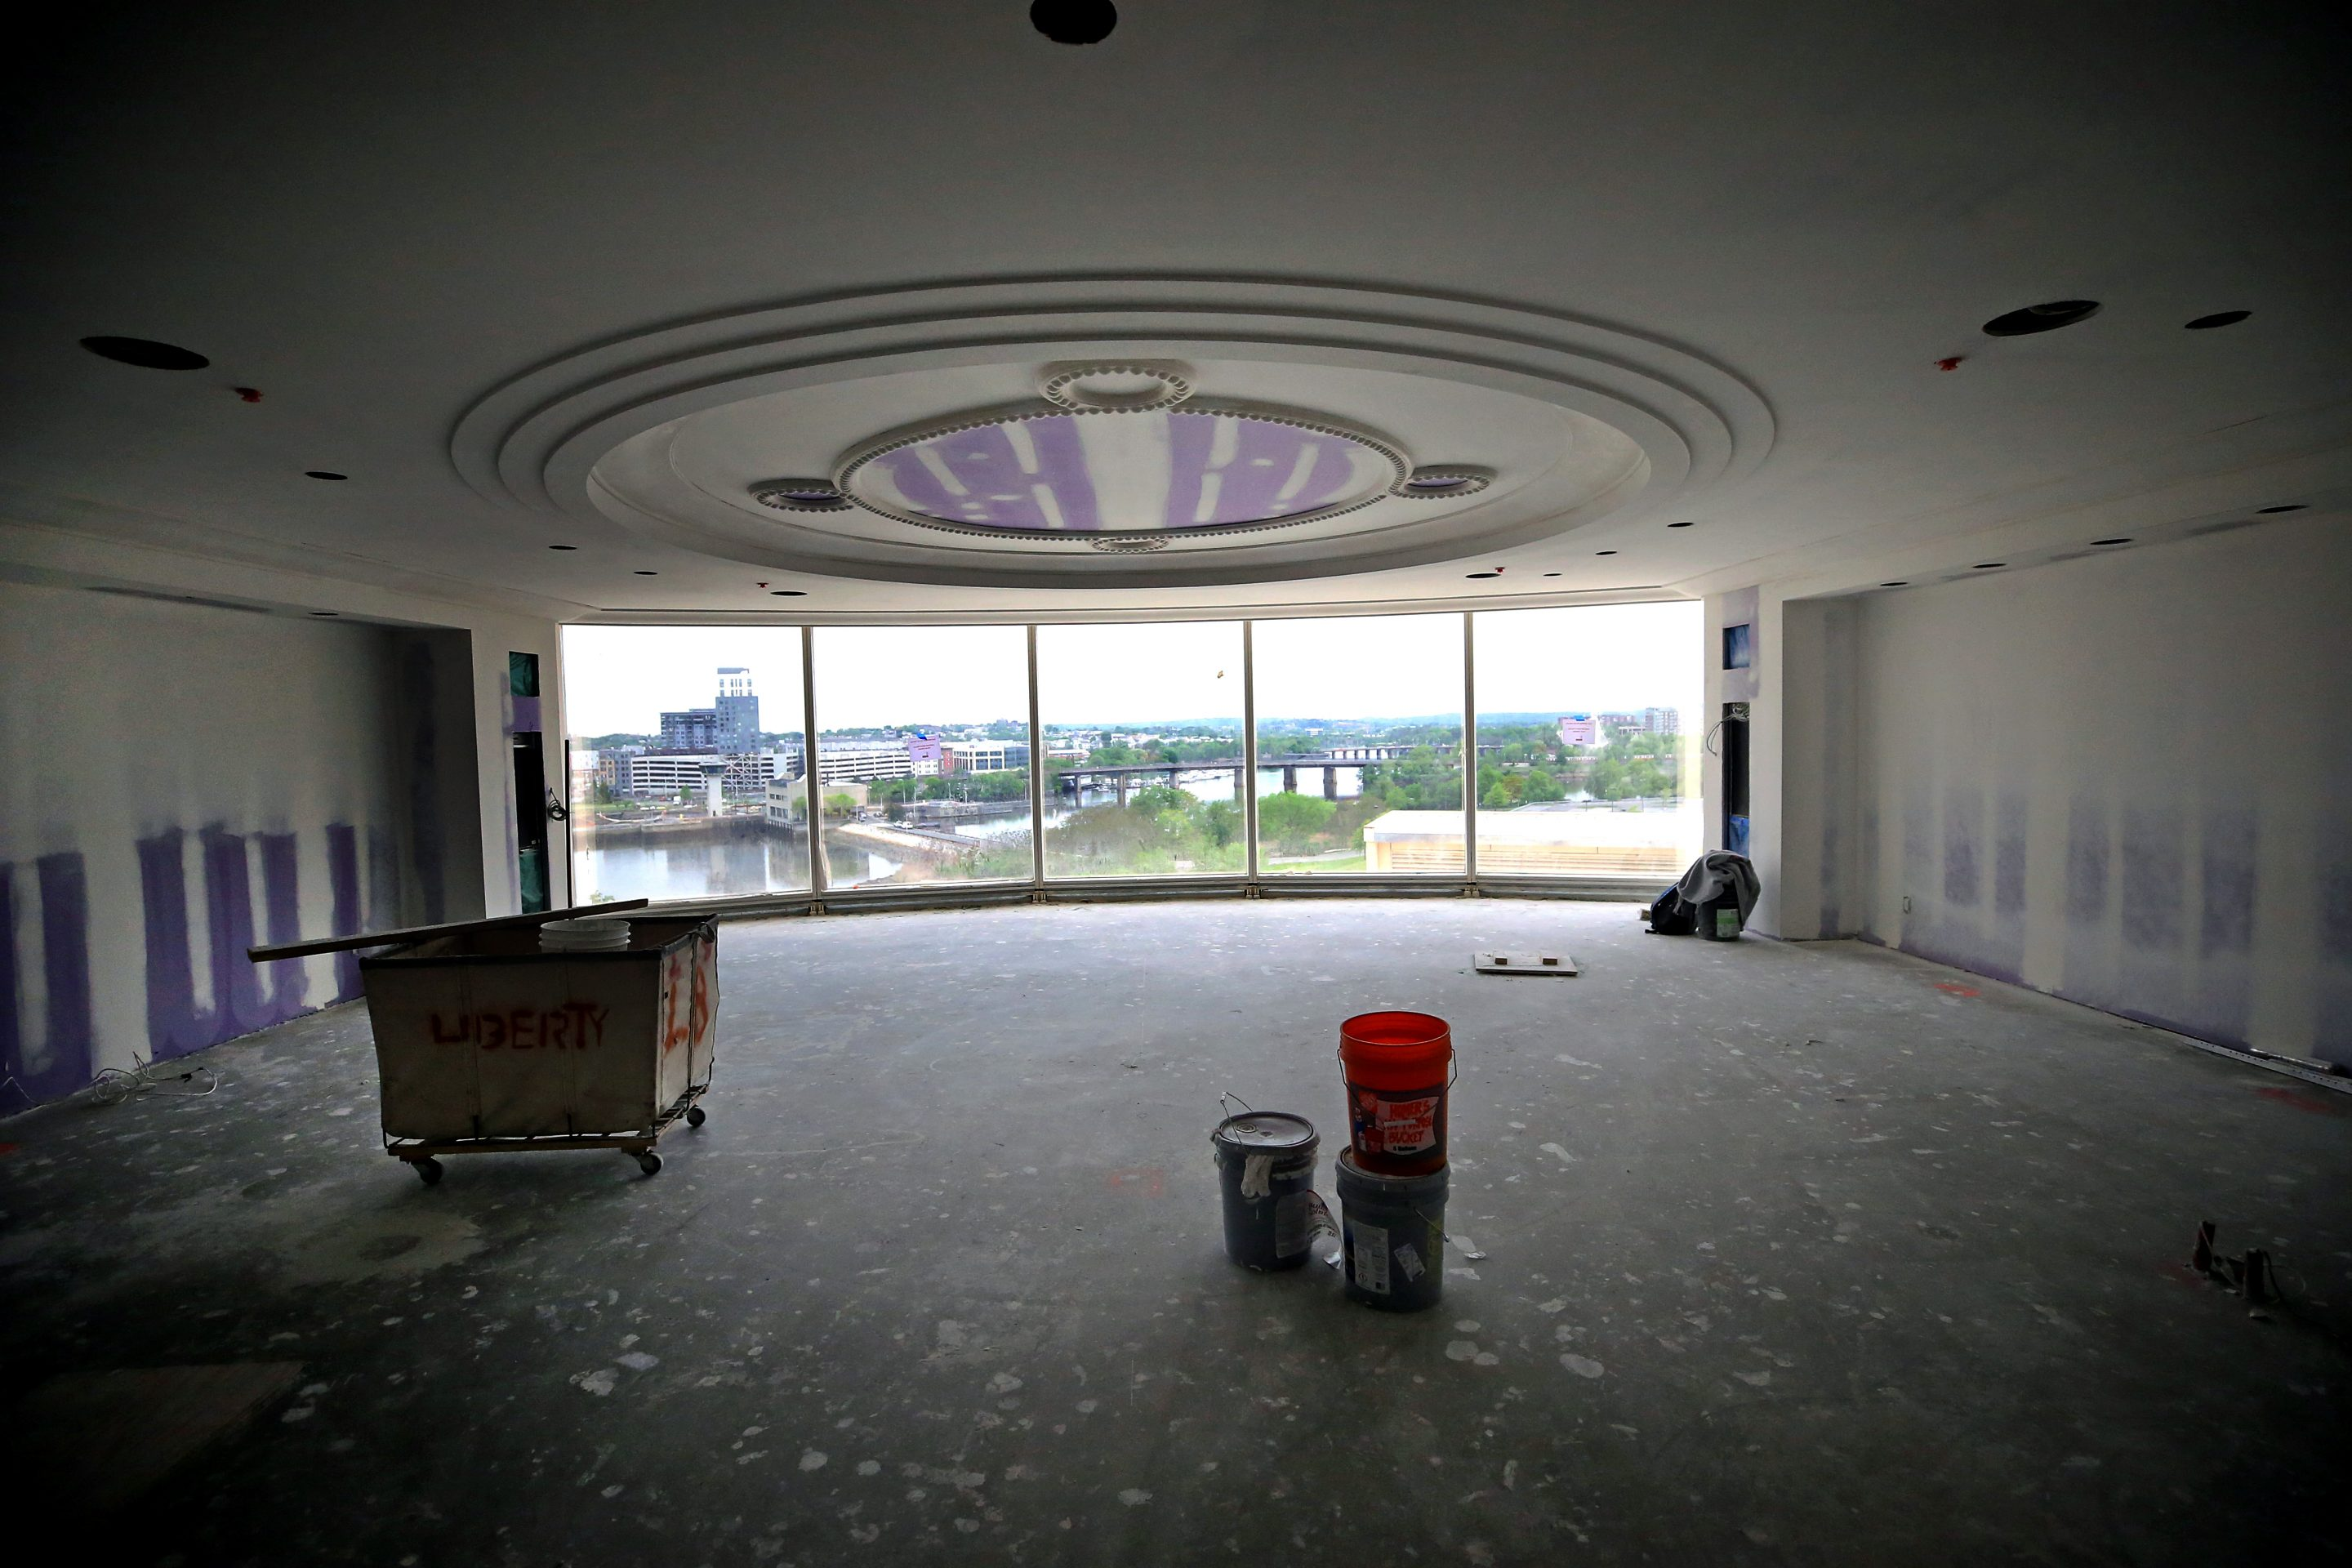 Construction takes place on a guest room at the Encore Boston Harbor casino hotel in Everett, MA on May 22, 2018.